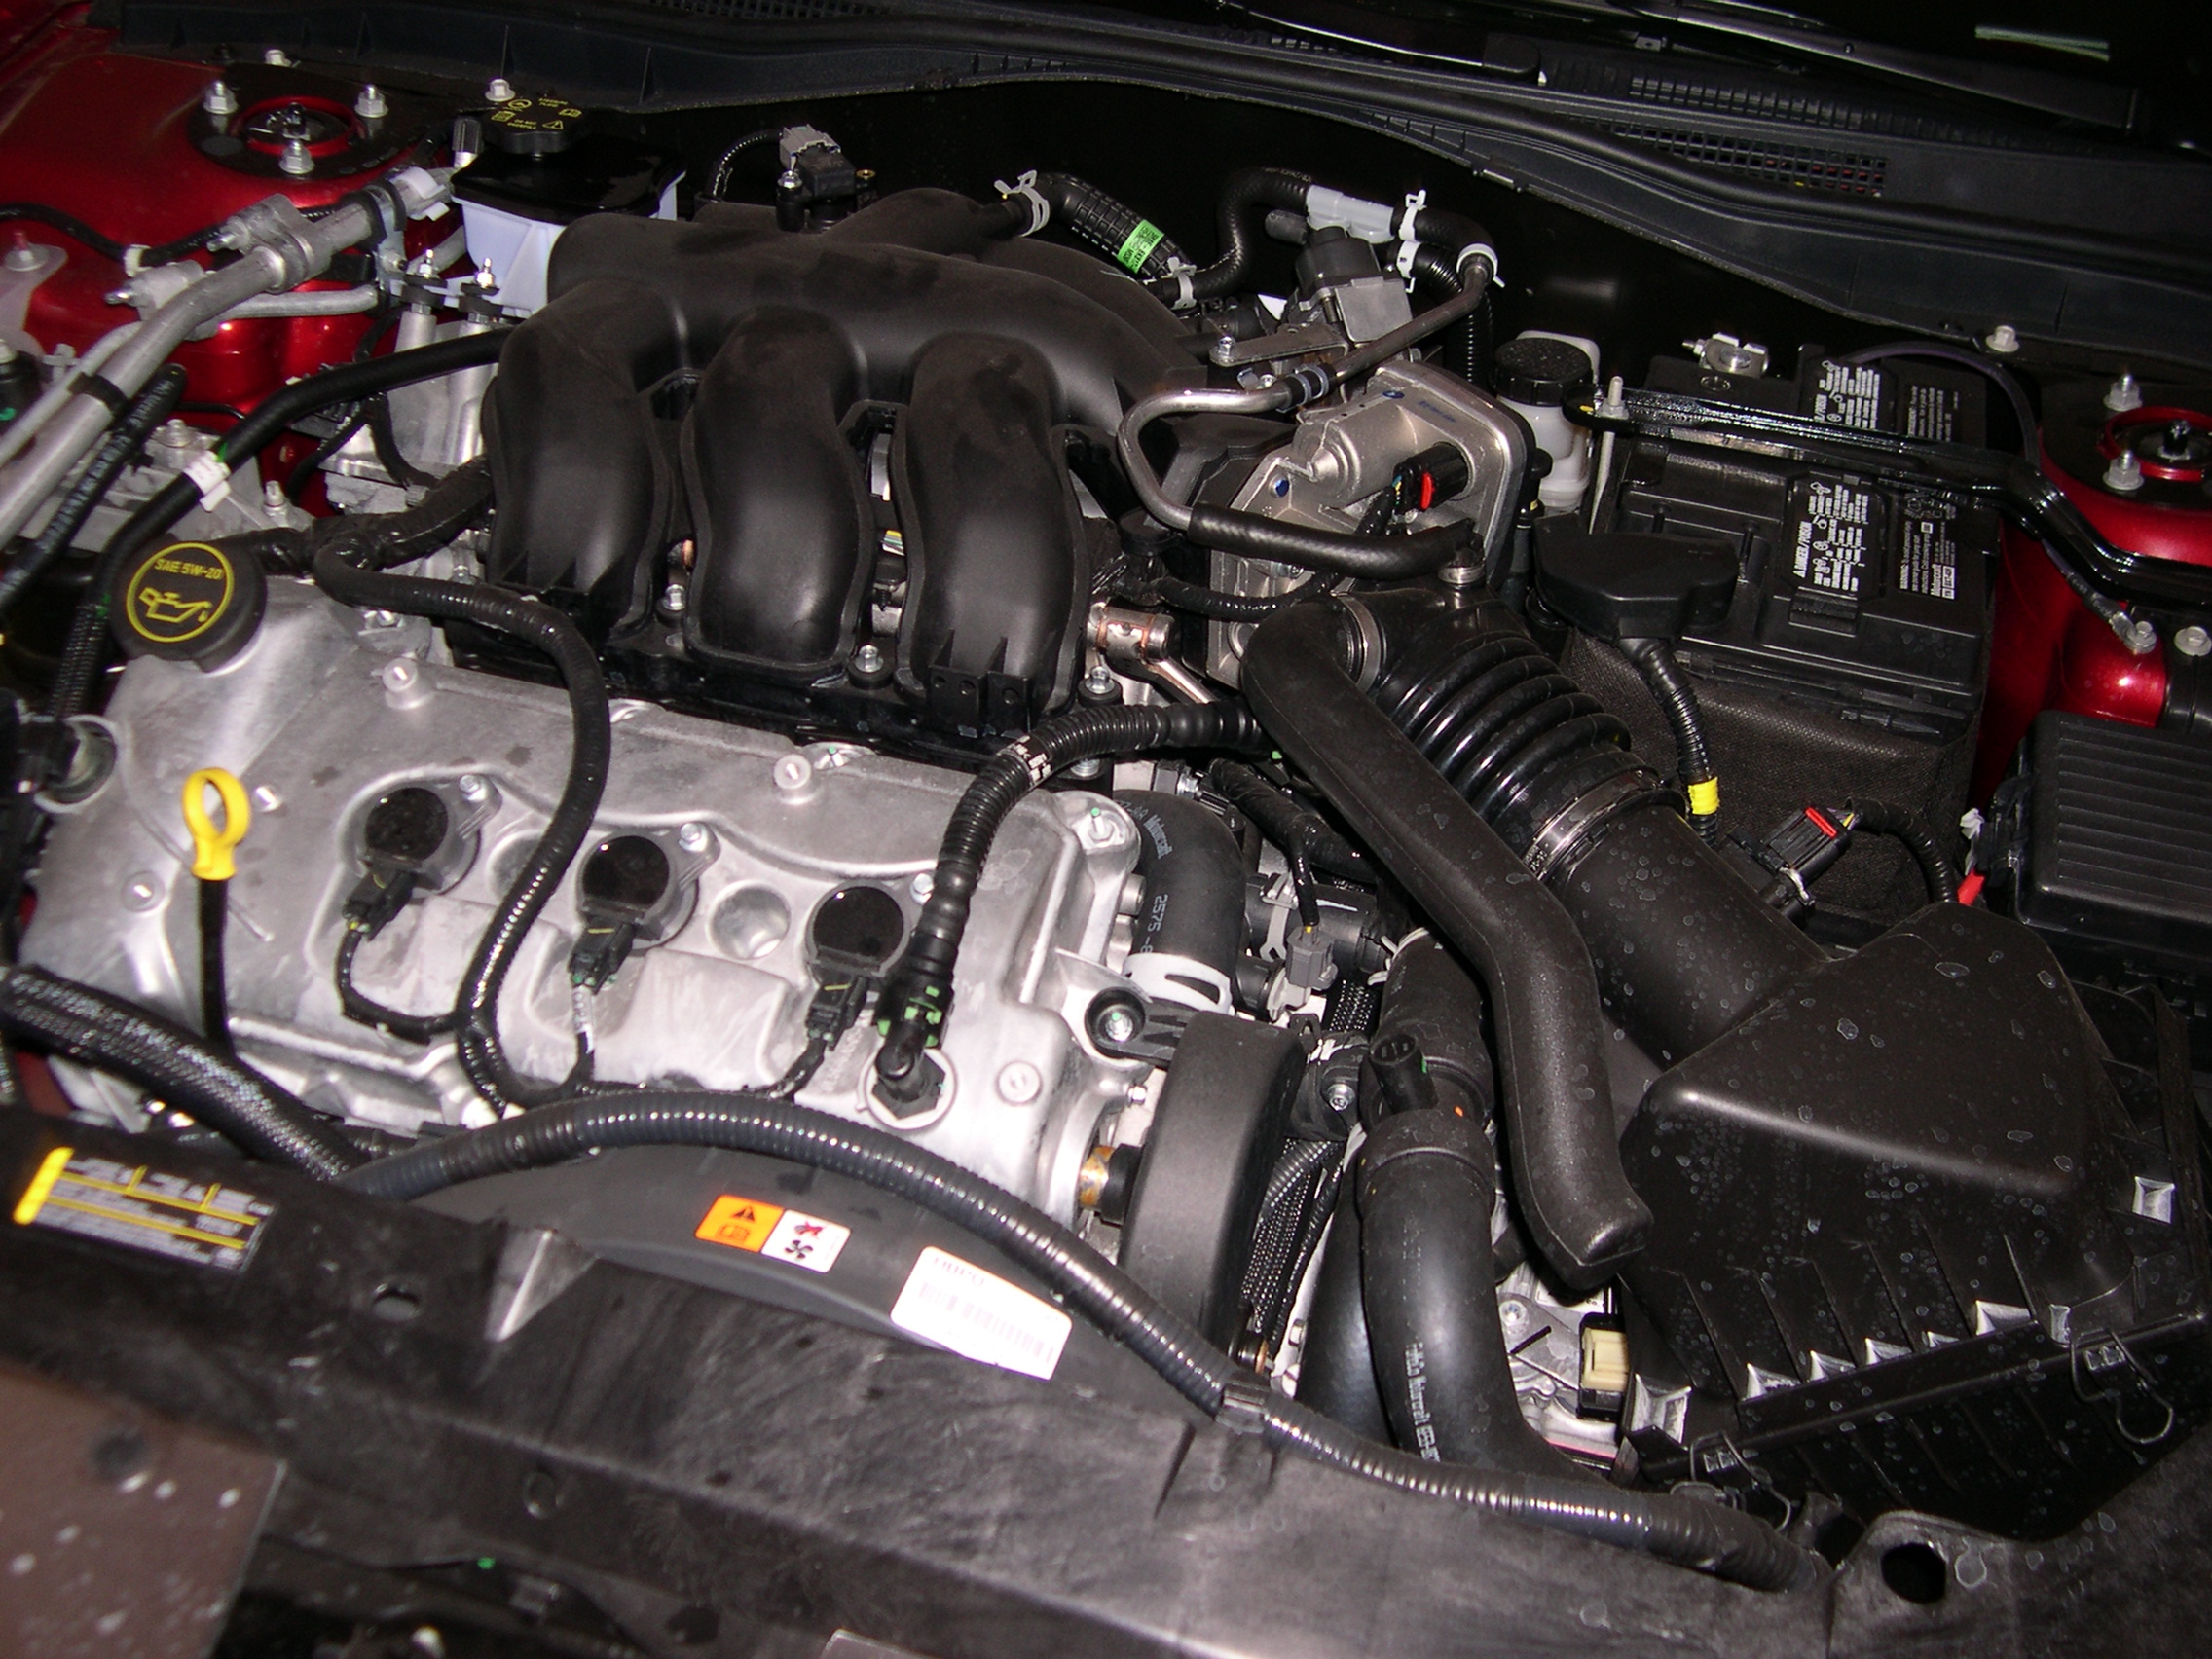 File:2006 Mercury Milan Duratec 30 engine.JPG